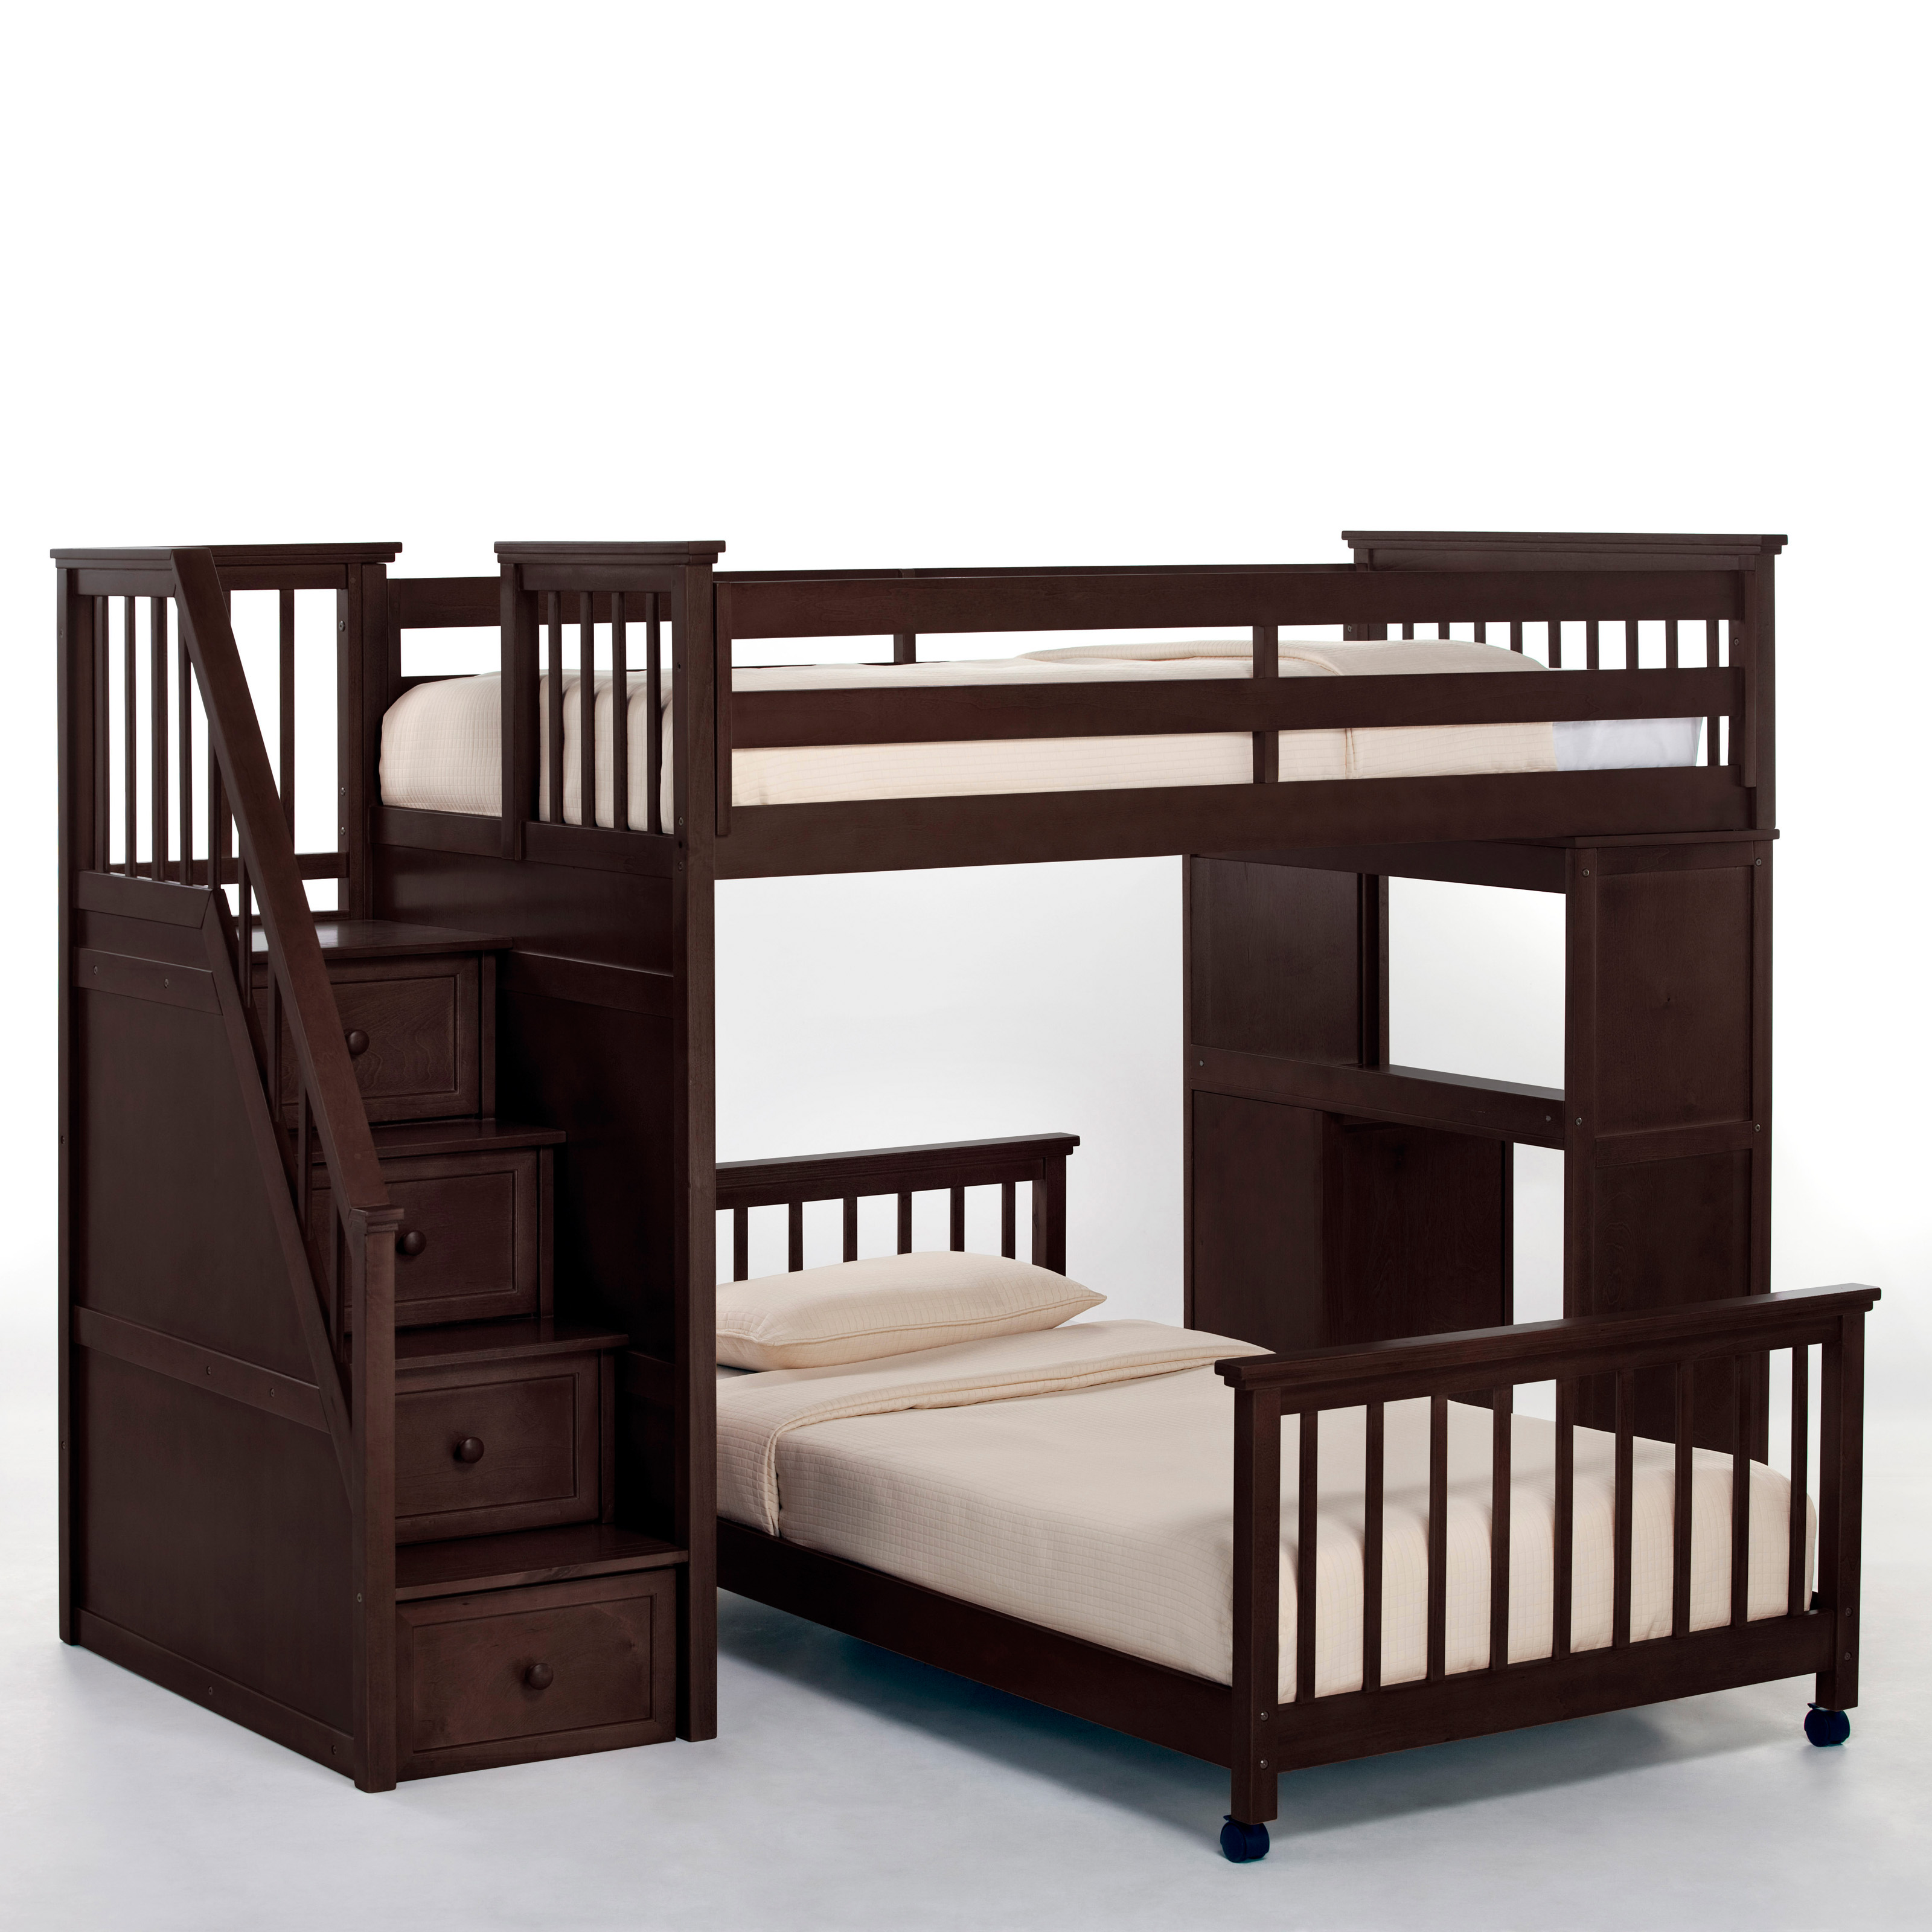 Schoolhouse stairway loft bed chocolate bunk beds for Loft bunk bed with desk